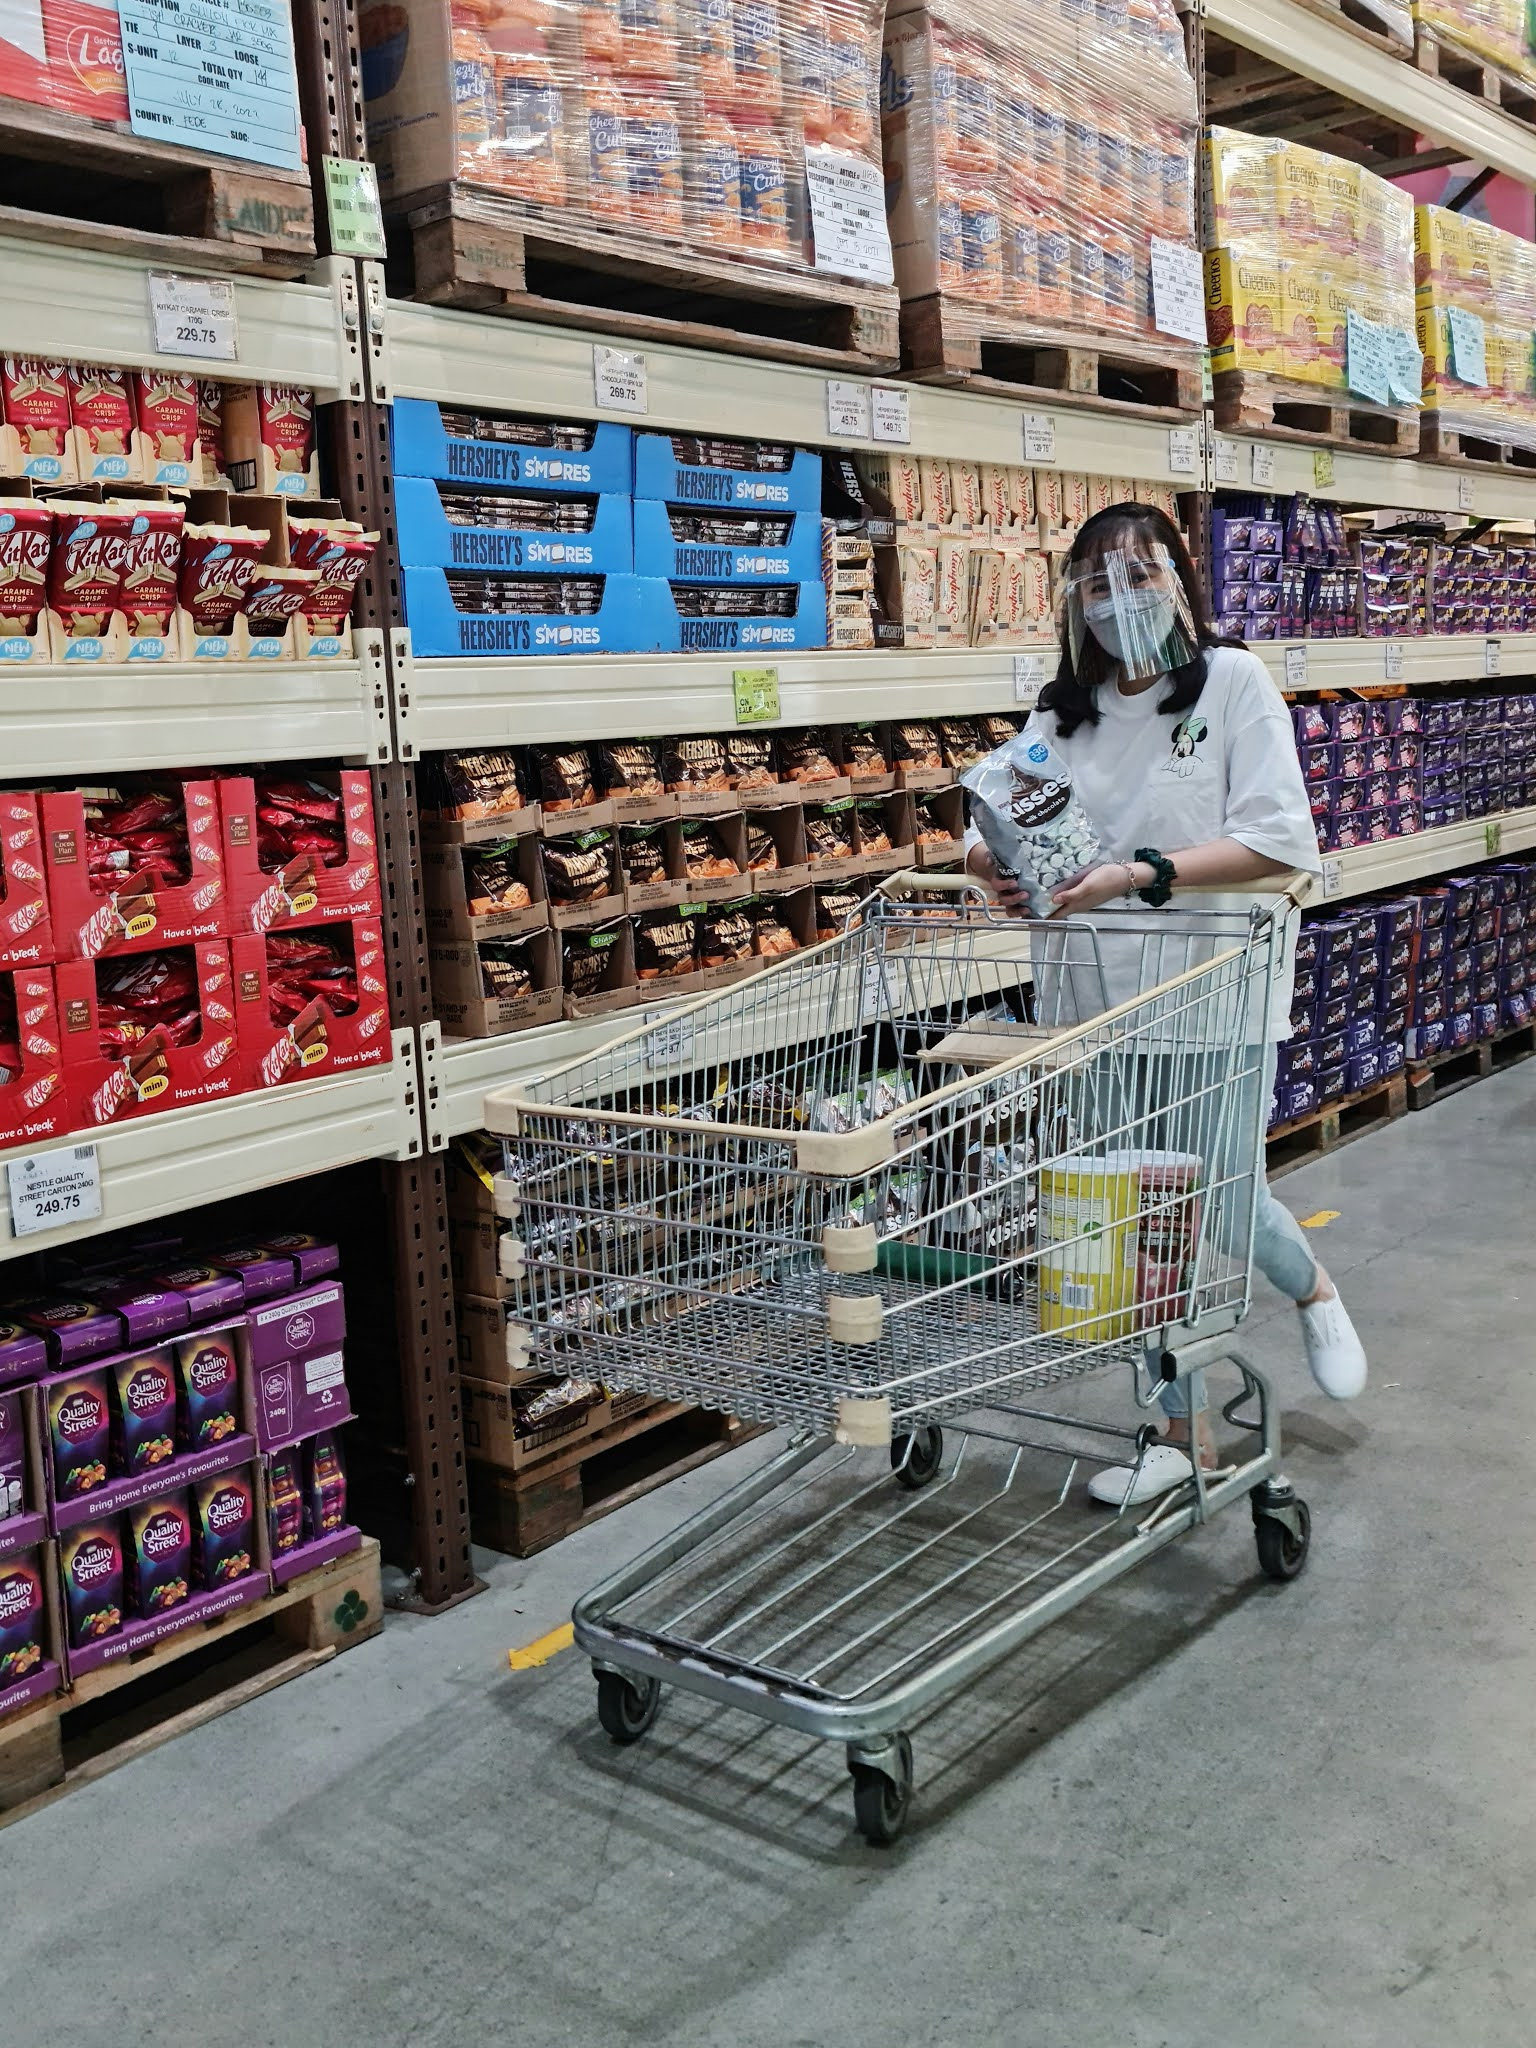 grocery shopping experience at Landers Superstore in the new normal